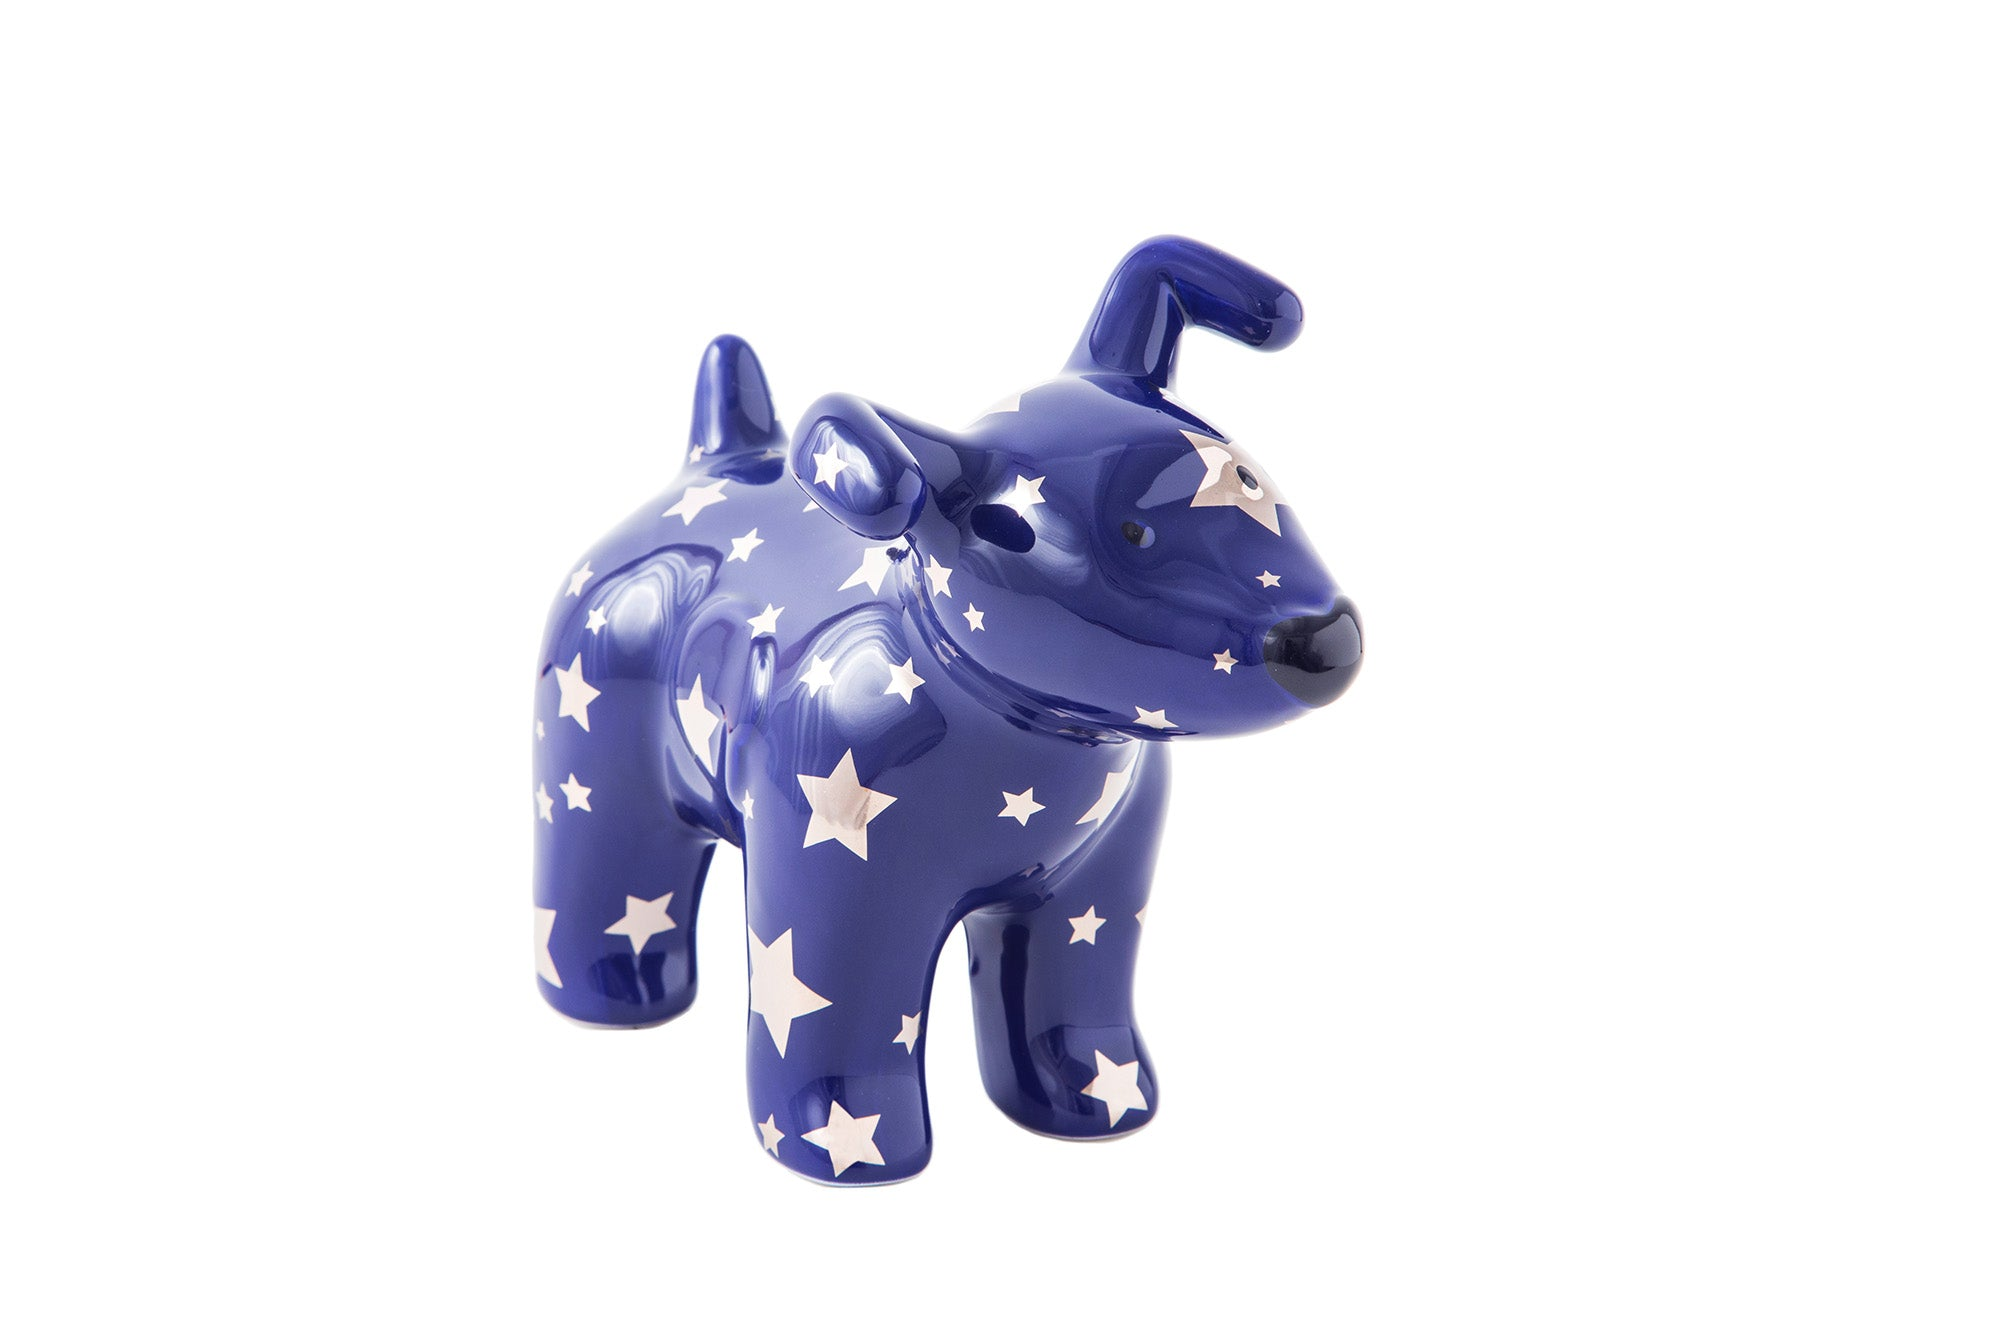 Snowdog Starry Night